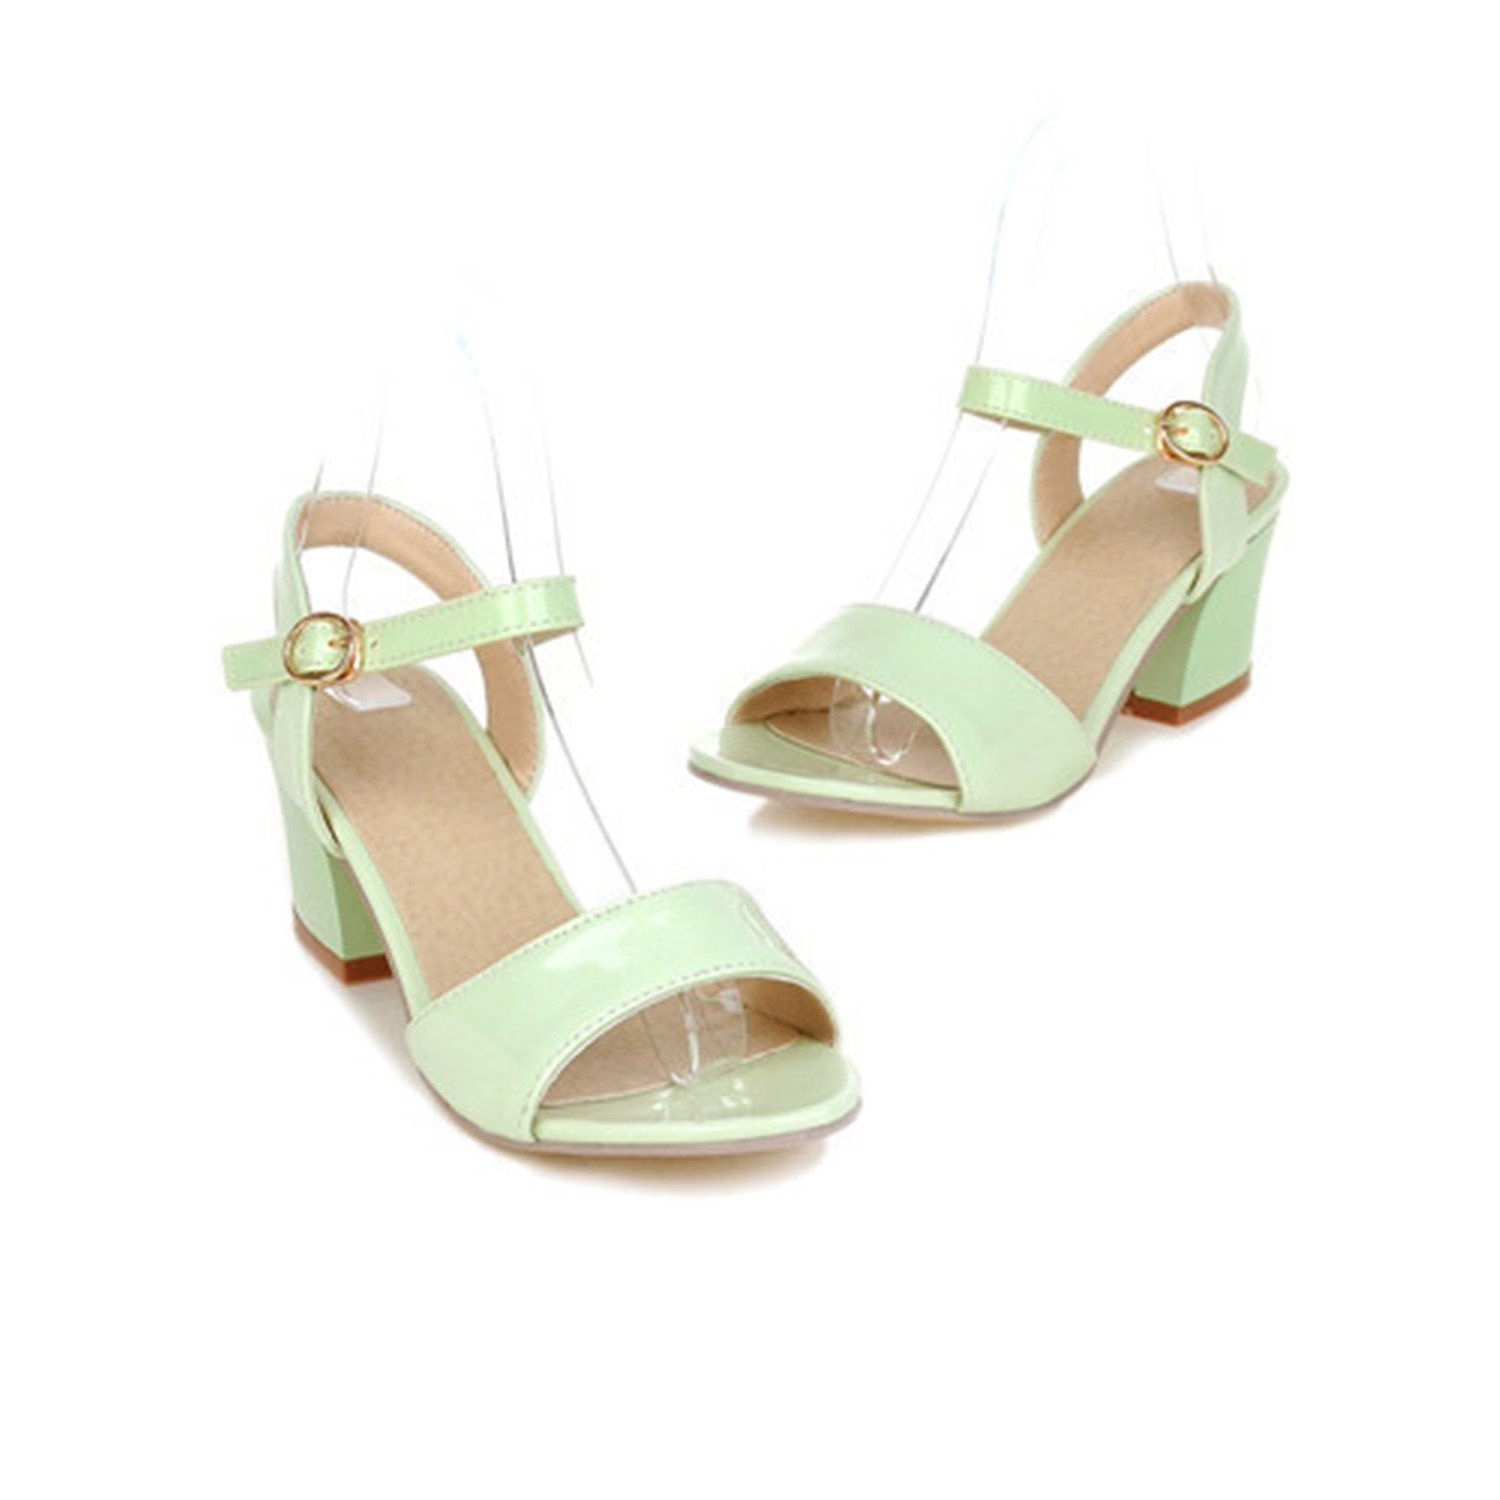 Micca Bacain Women Size Chunky 9 10 Open Toe Chunky Size High Heels Sandals White Pink Green Shoes 34-43 9 M US|Army Green B074PNS43R 731a45